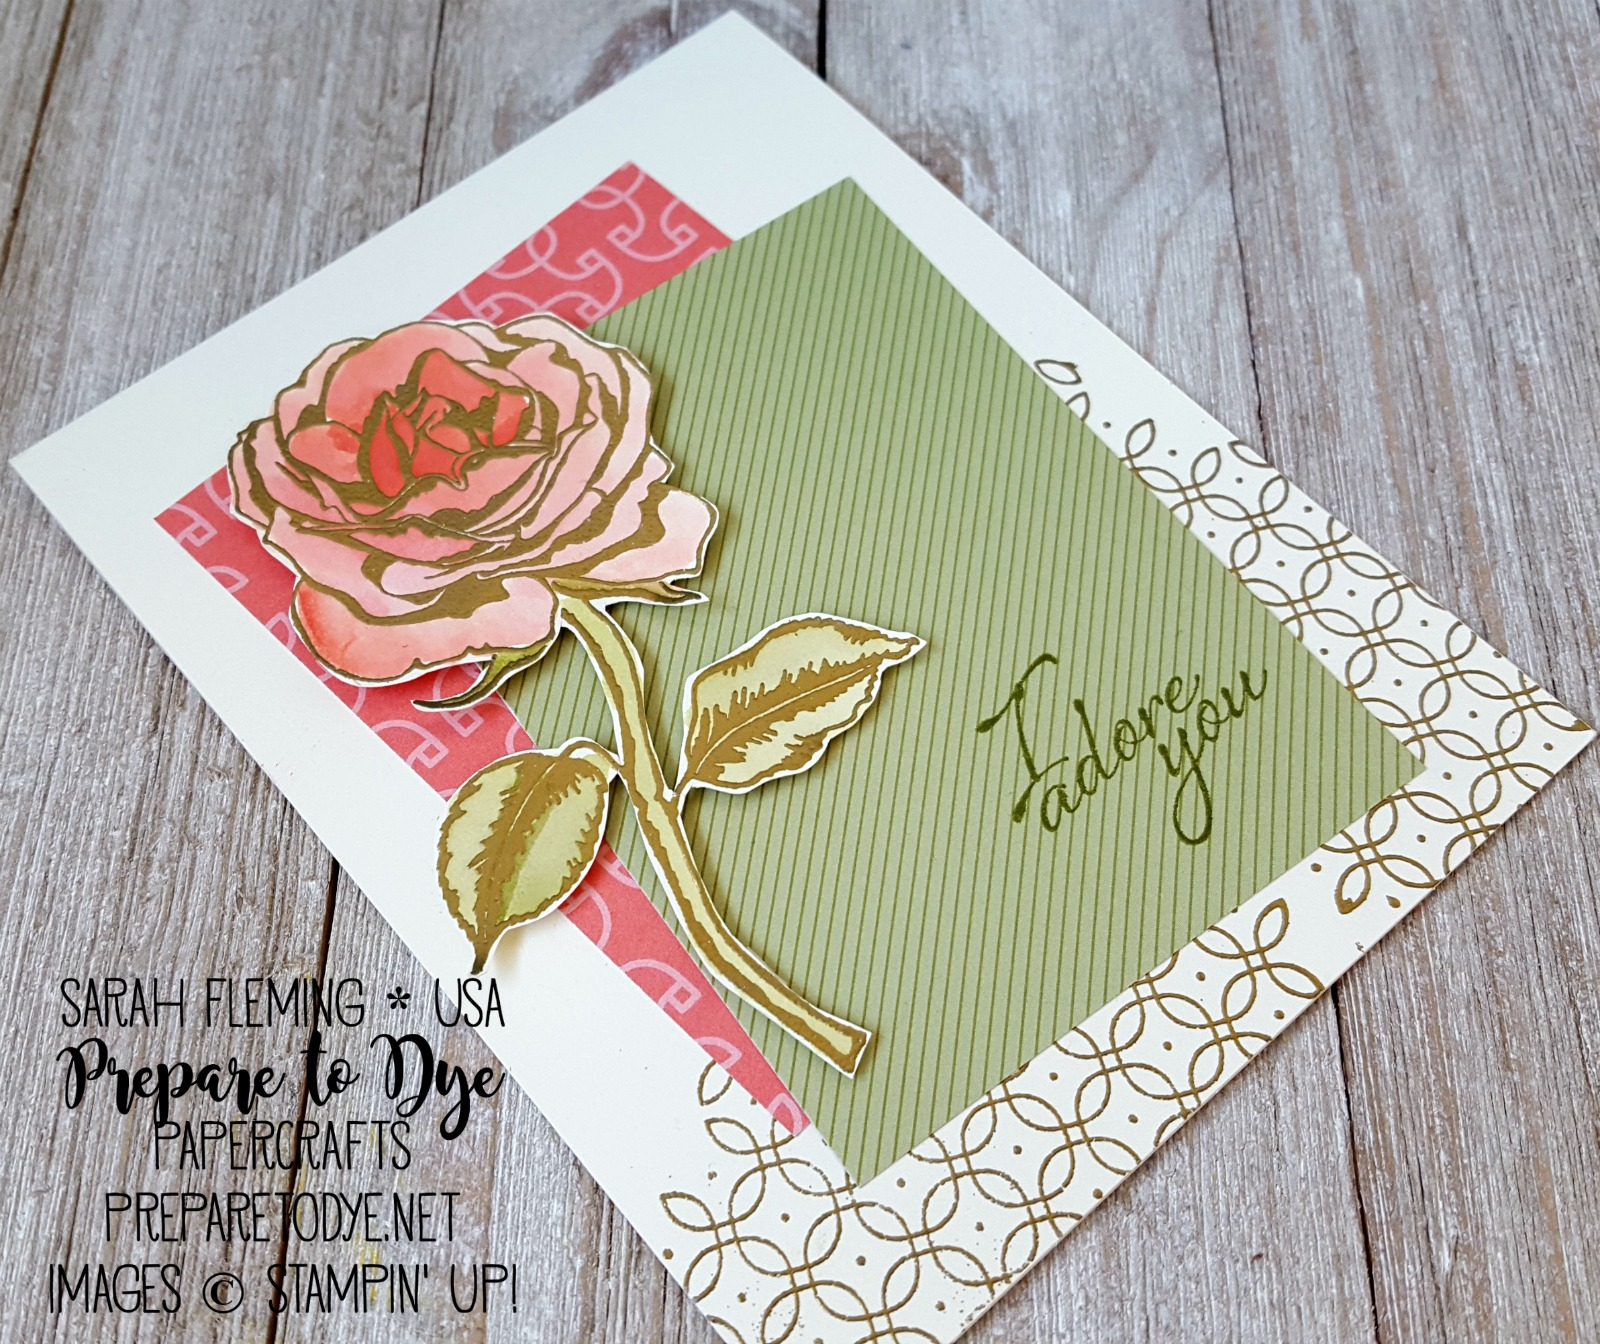 Stampin' Up! Graceful Garden with Petal Garden Memories & More, heat embossing - Sarah Fleming - Prepare to Dye Papercrafts